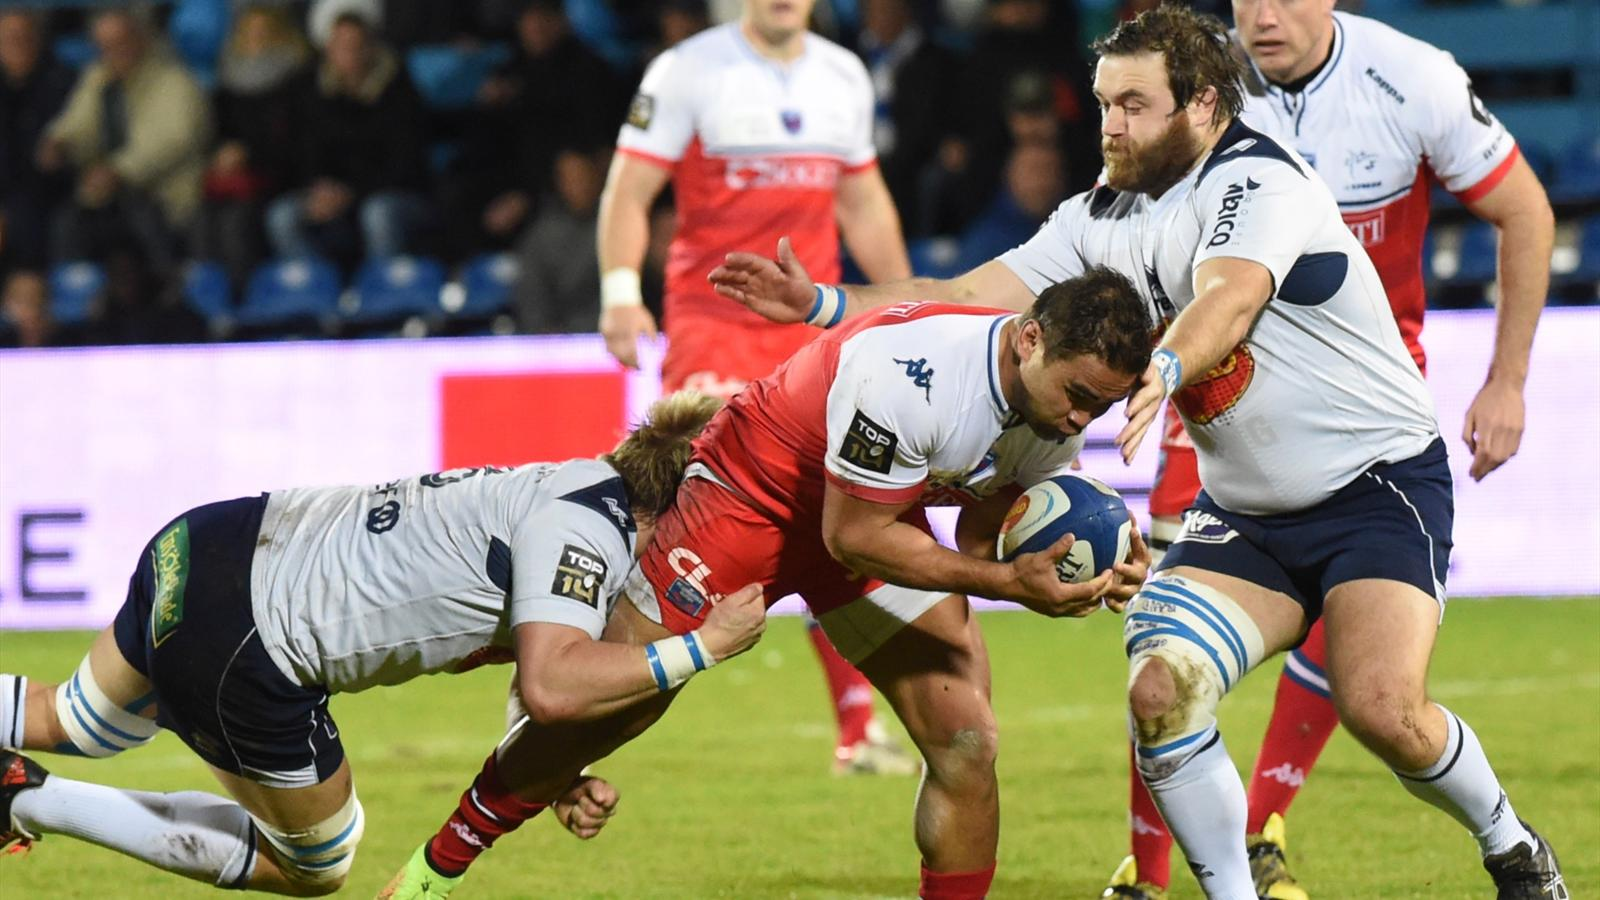 Nigel Hunt (Grenoble) face à Agen - 30 janvier 2016